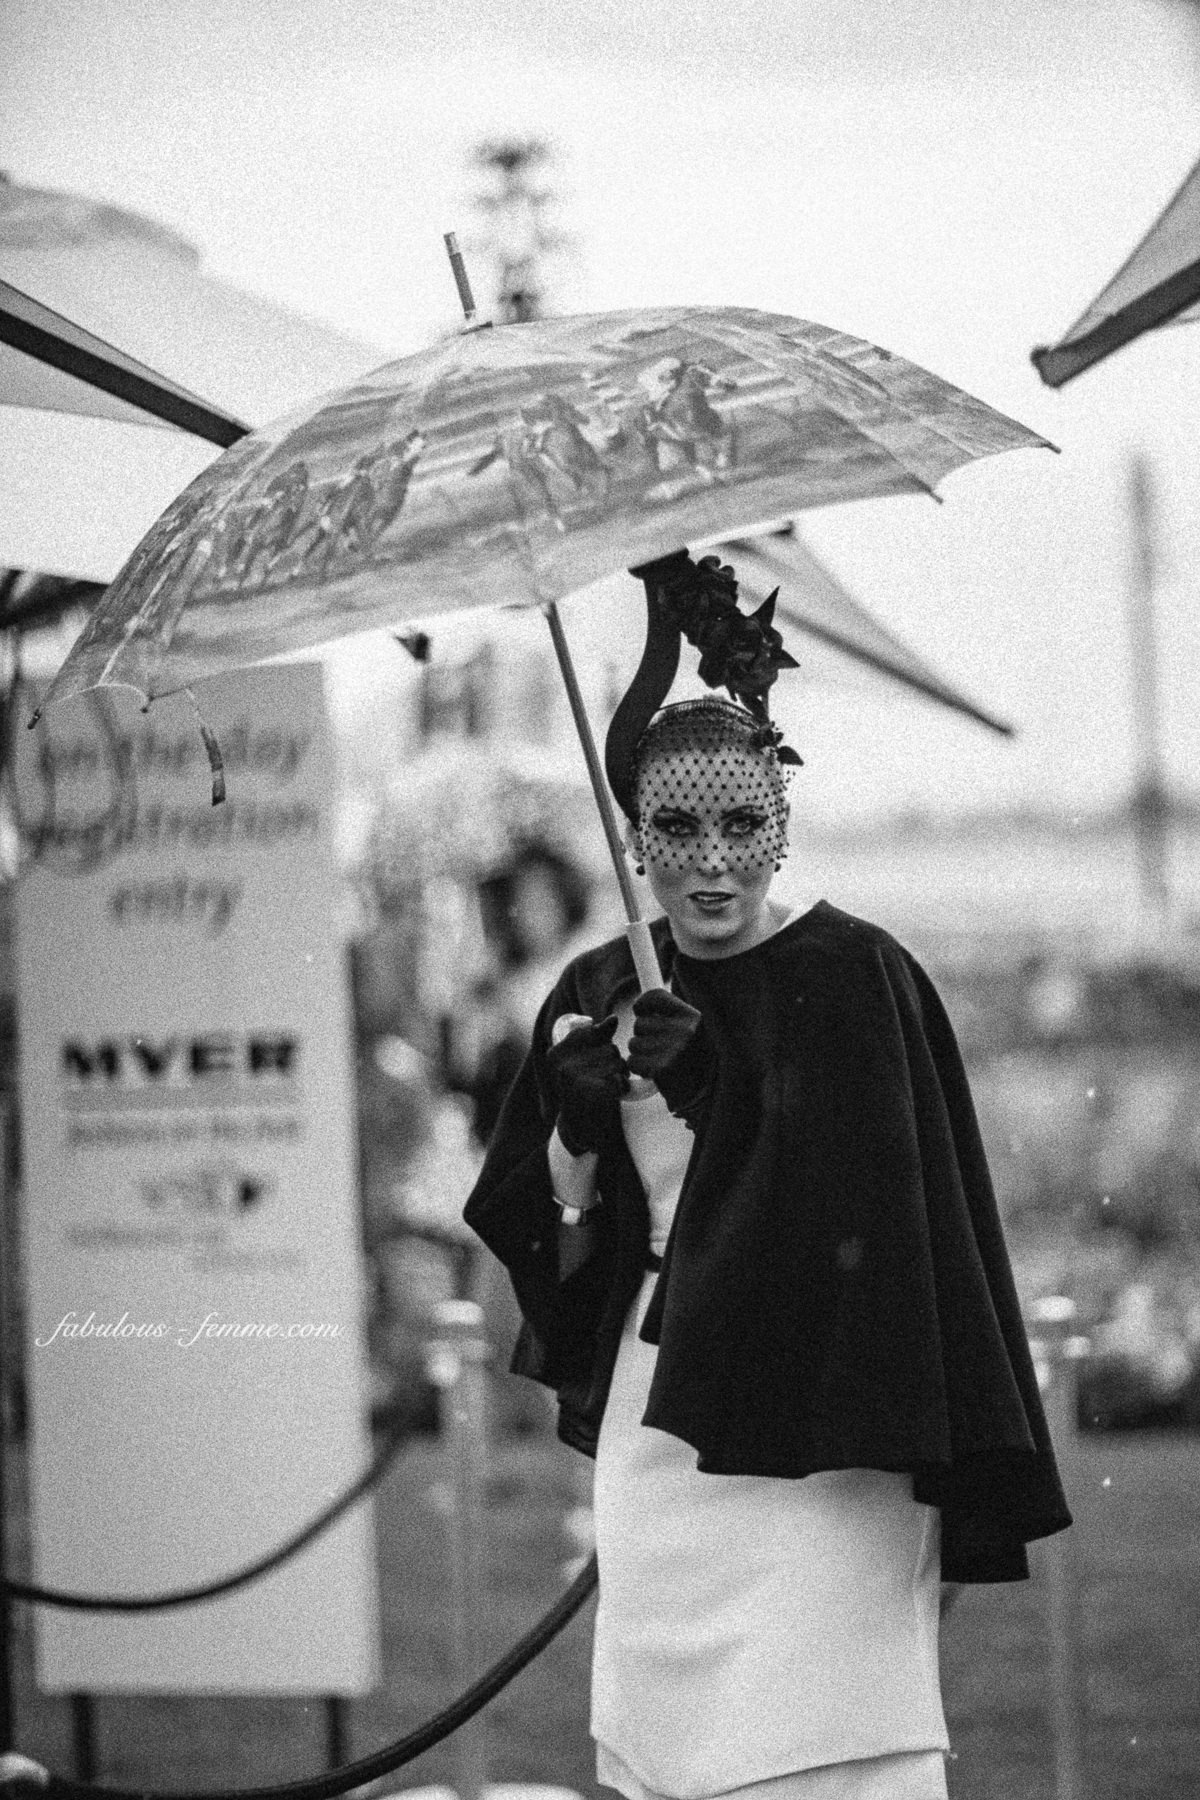 stylish umbrella at biggest Melbourne event - Melbourne Cup racing fashion in rain